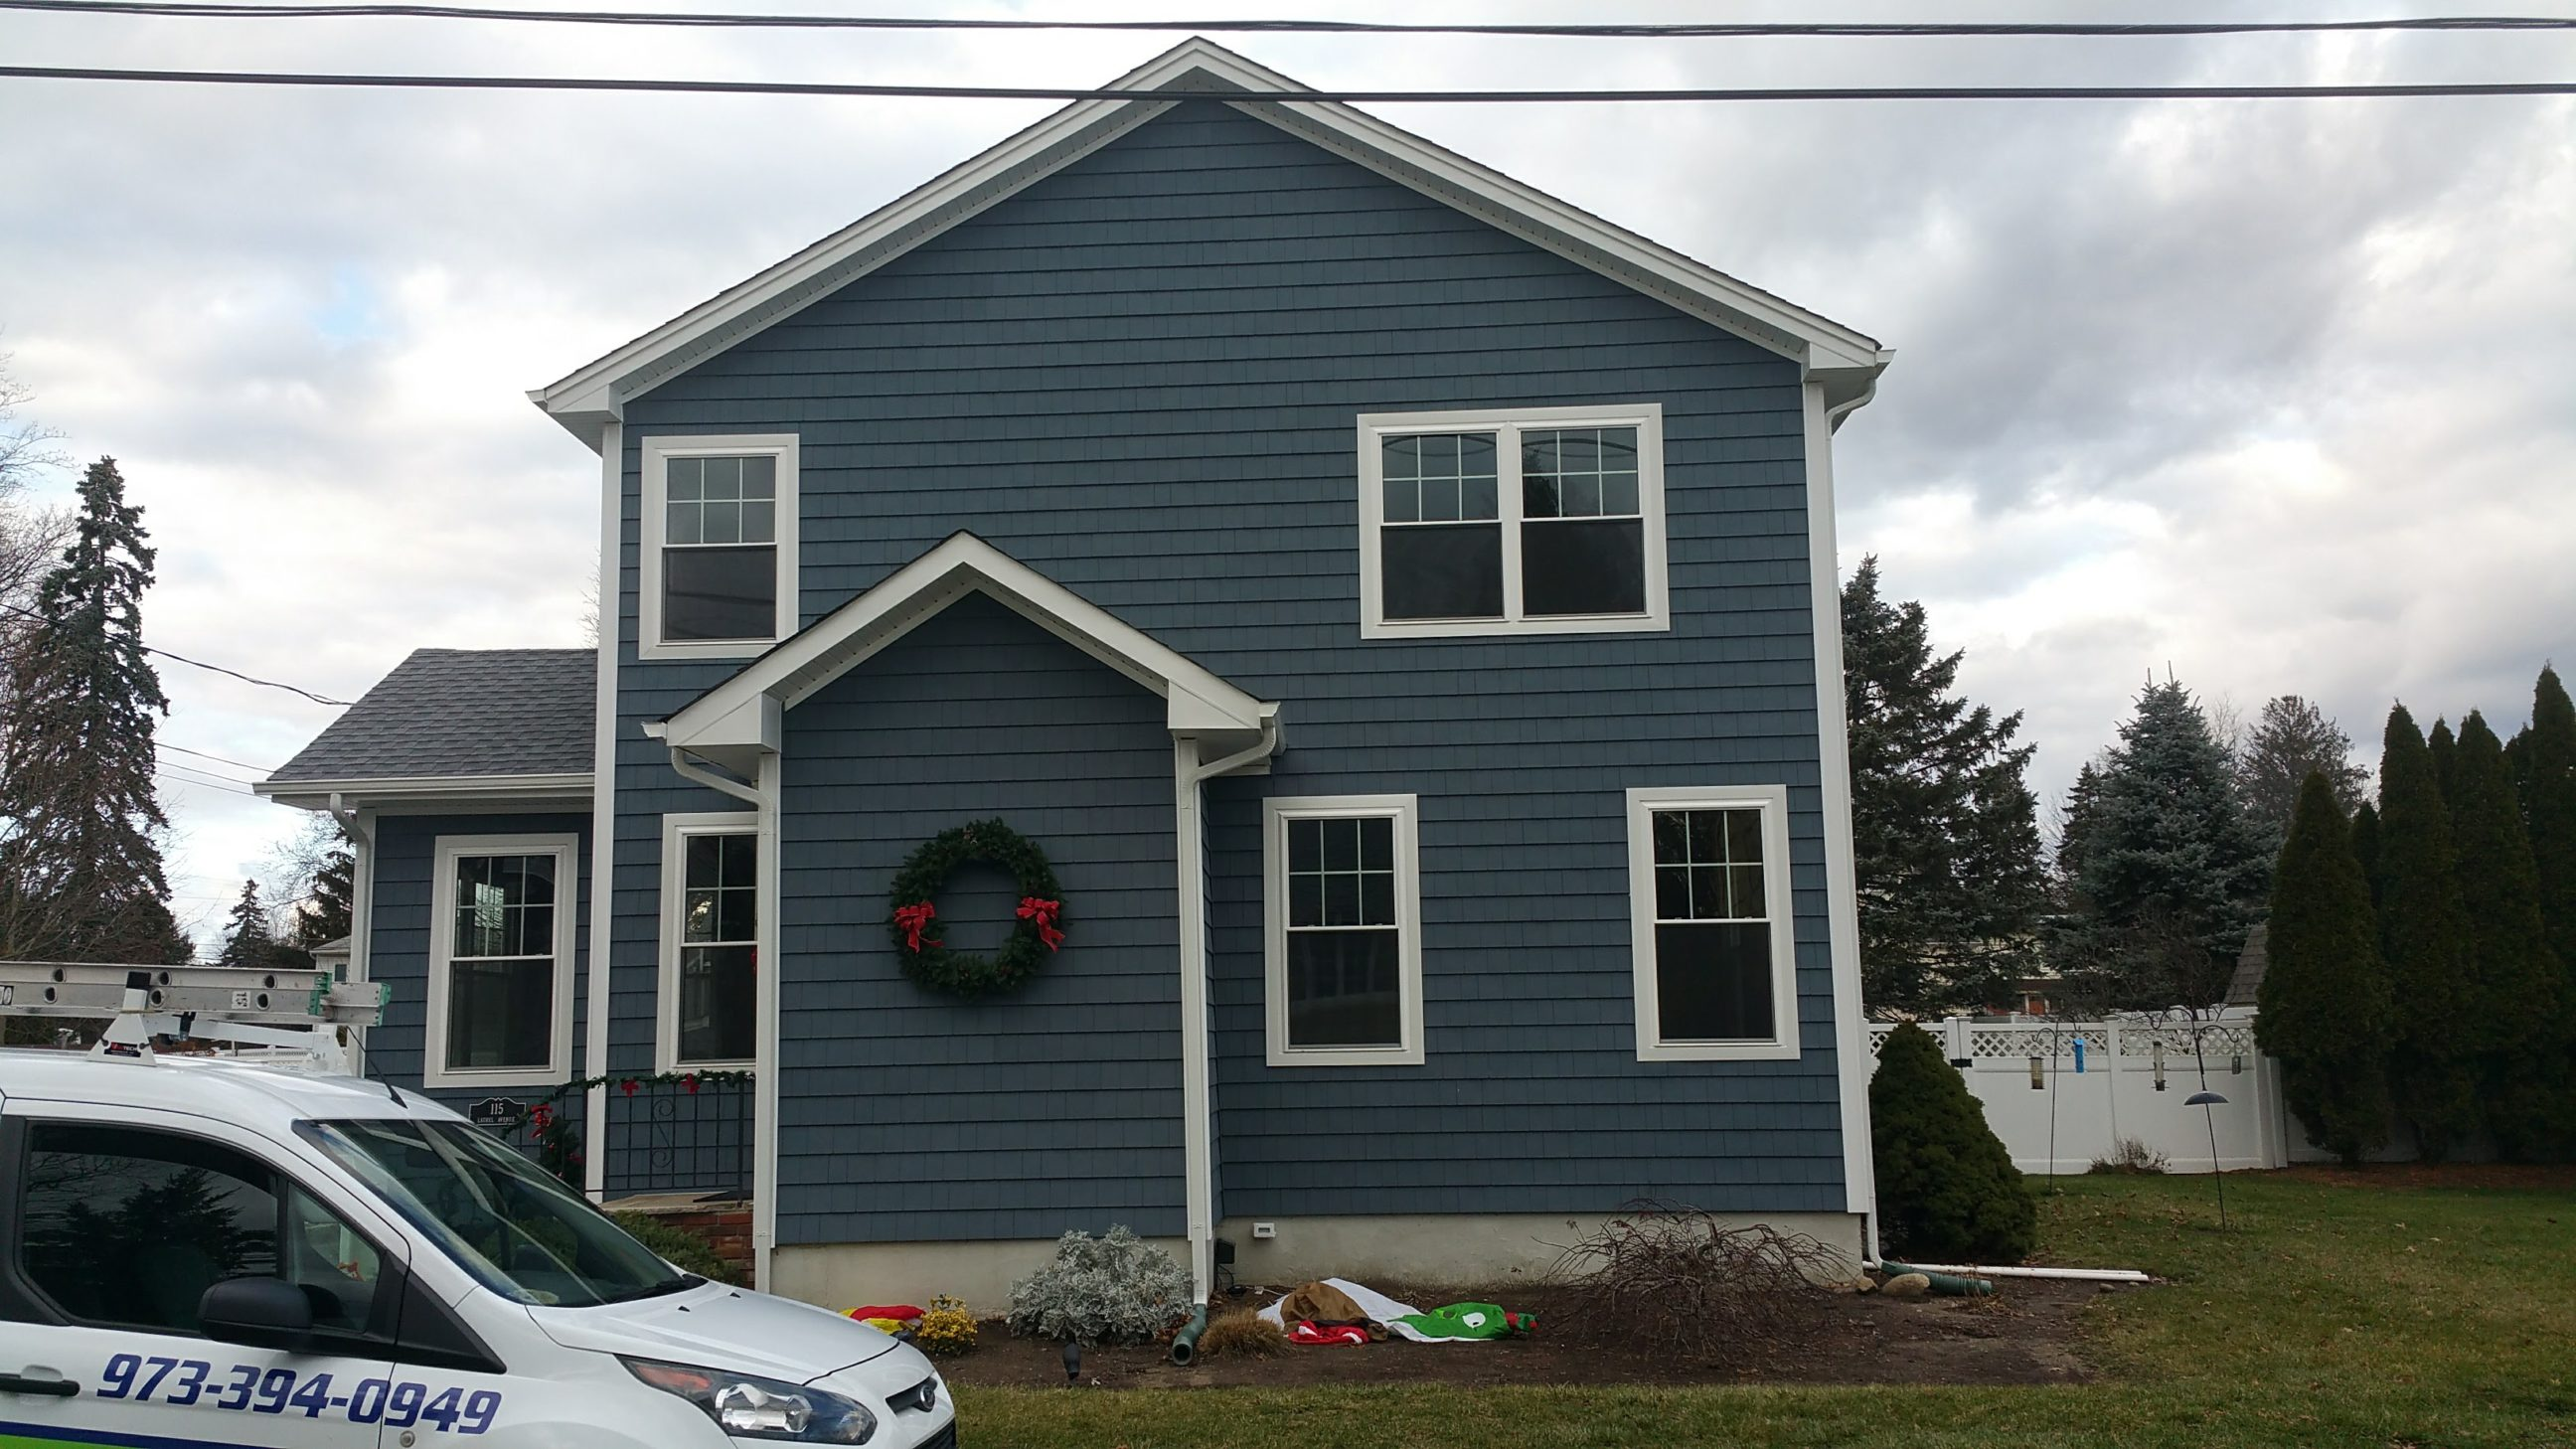 Vinyl Siding And Windows Laurel Ave Pompton Lakes Nj